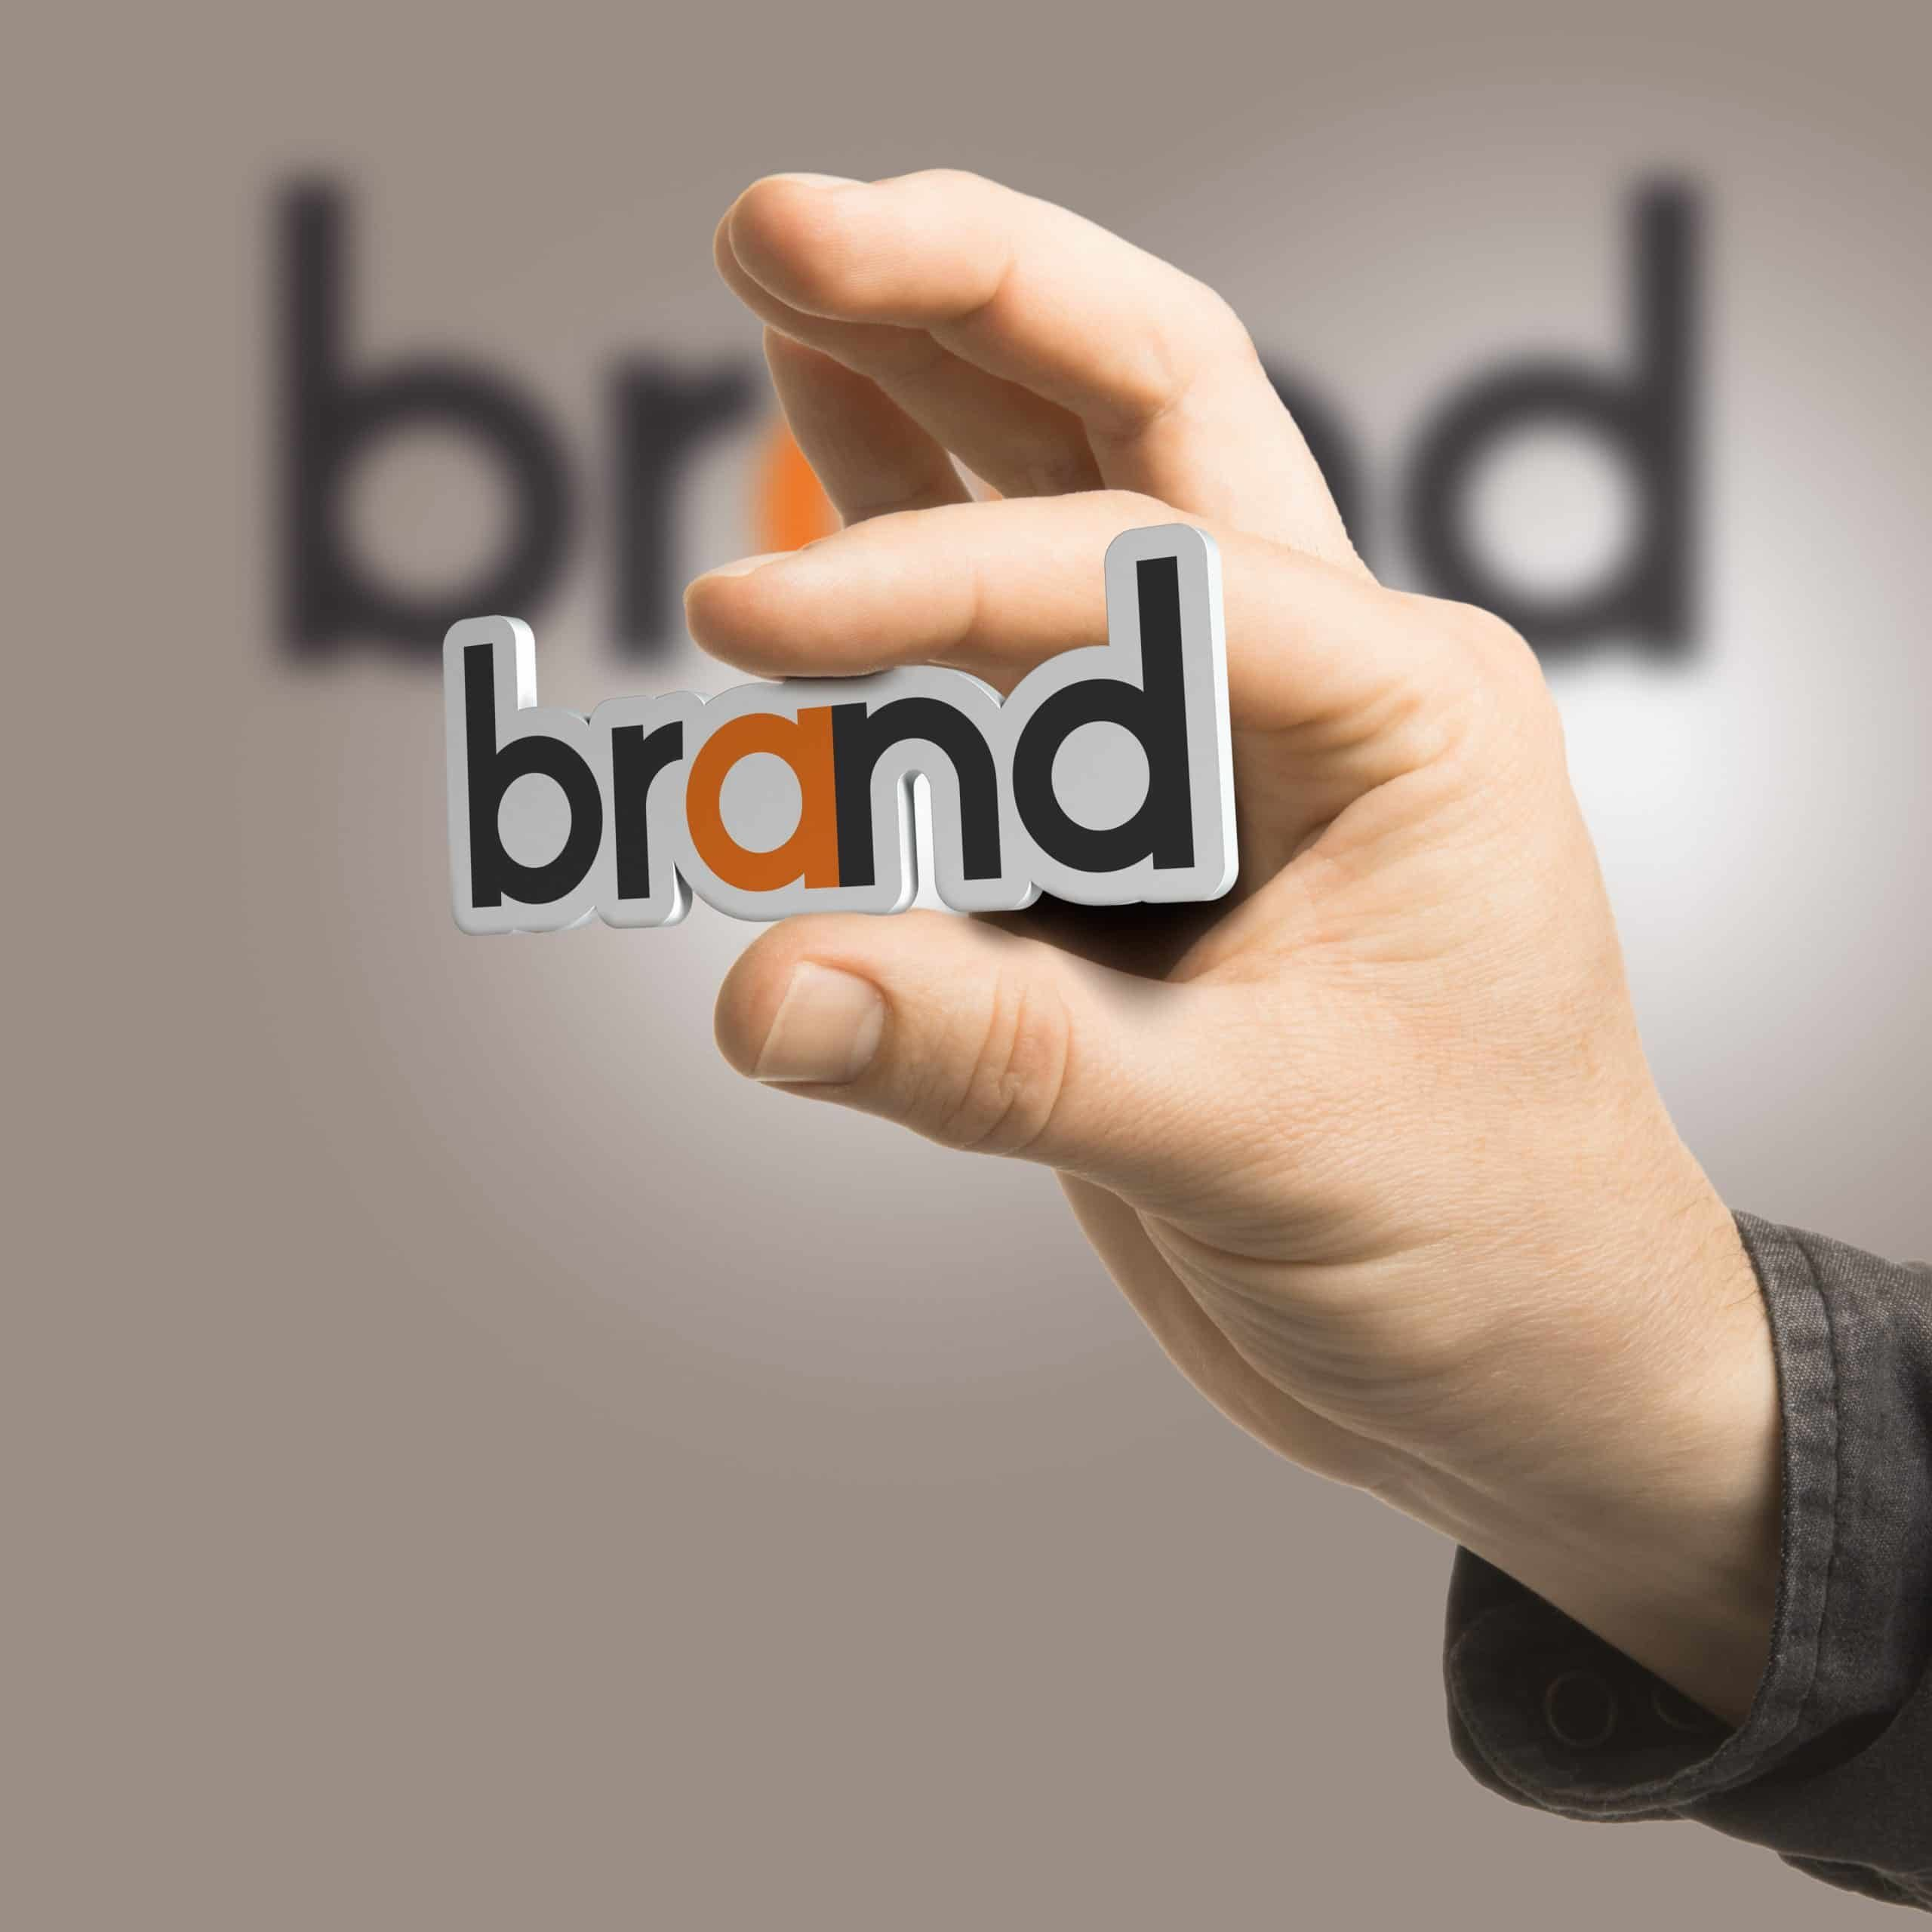 Build brand partnerships